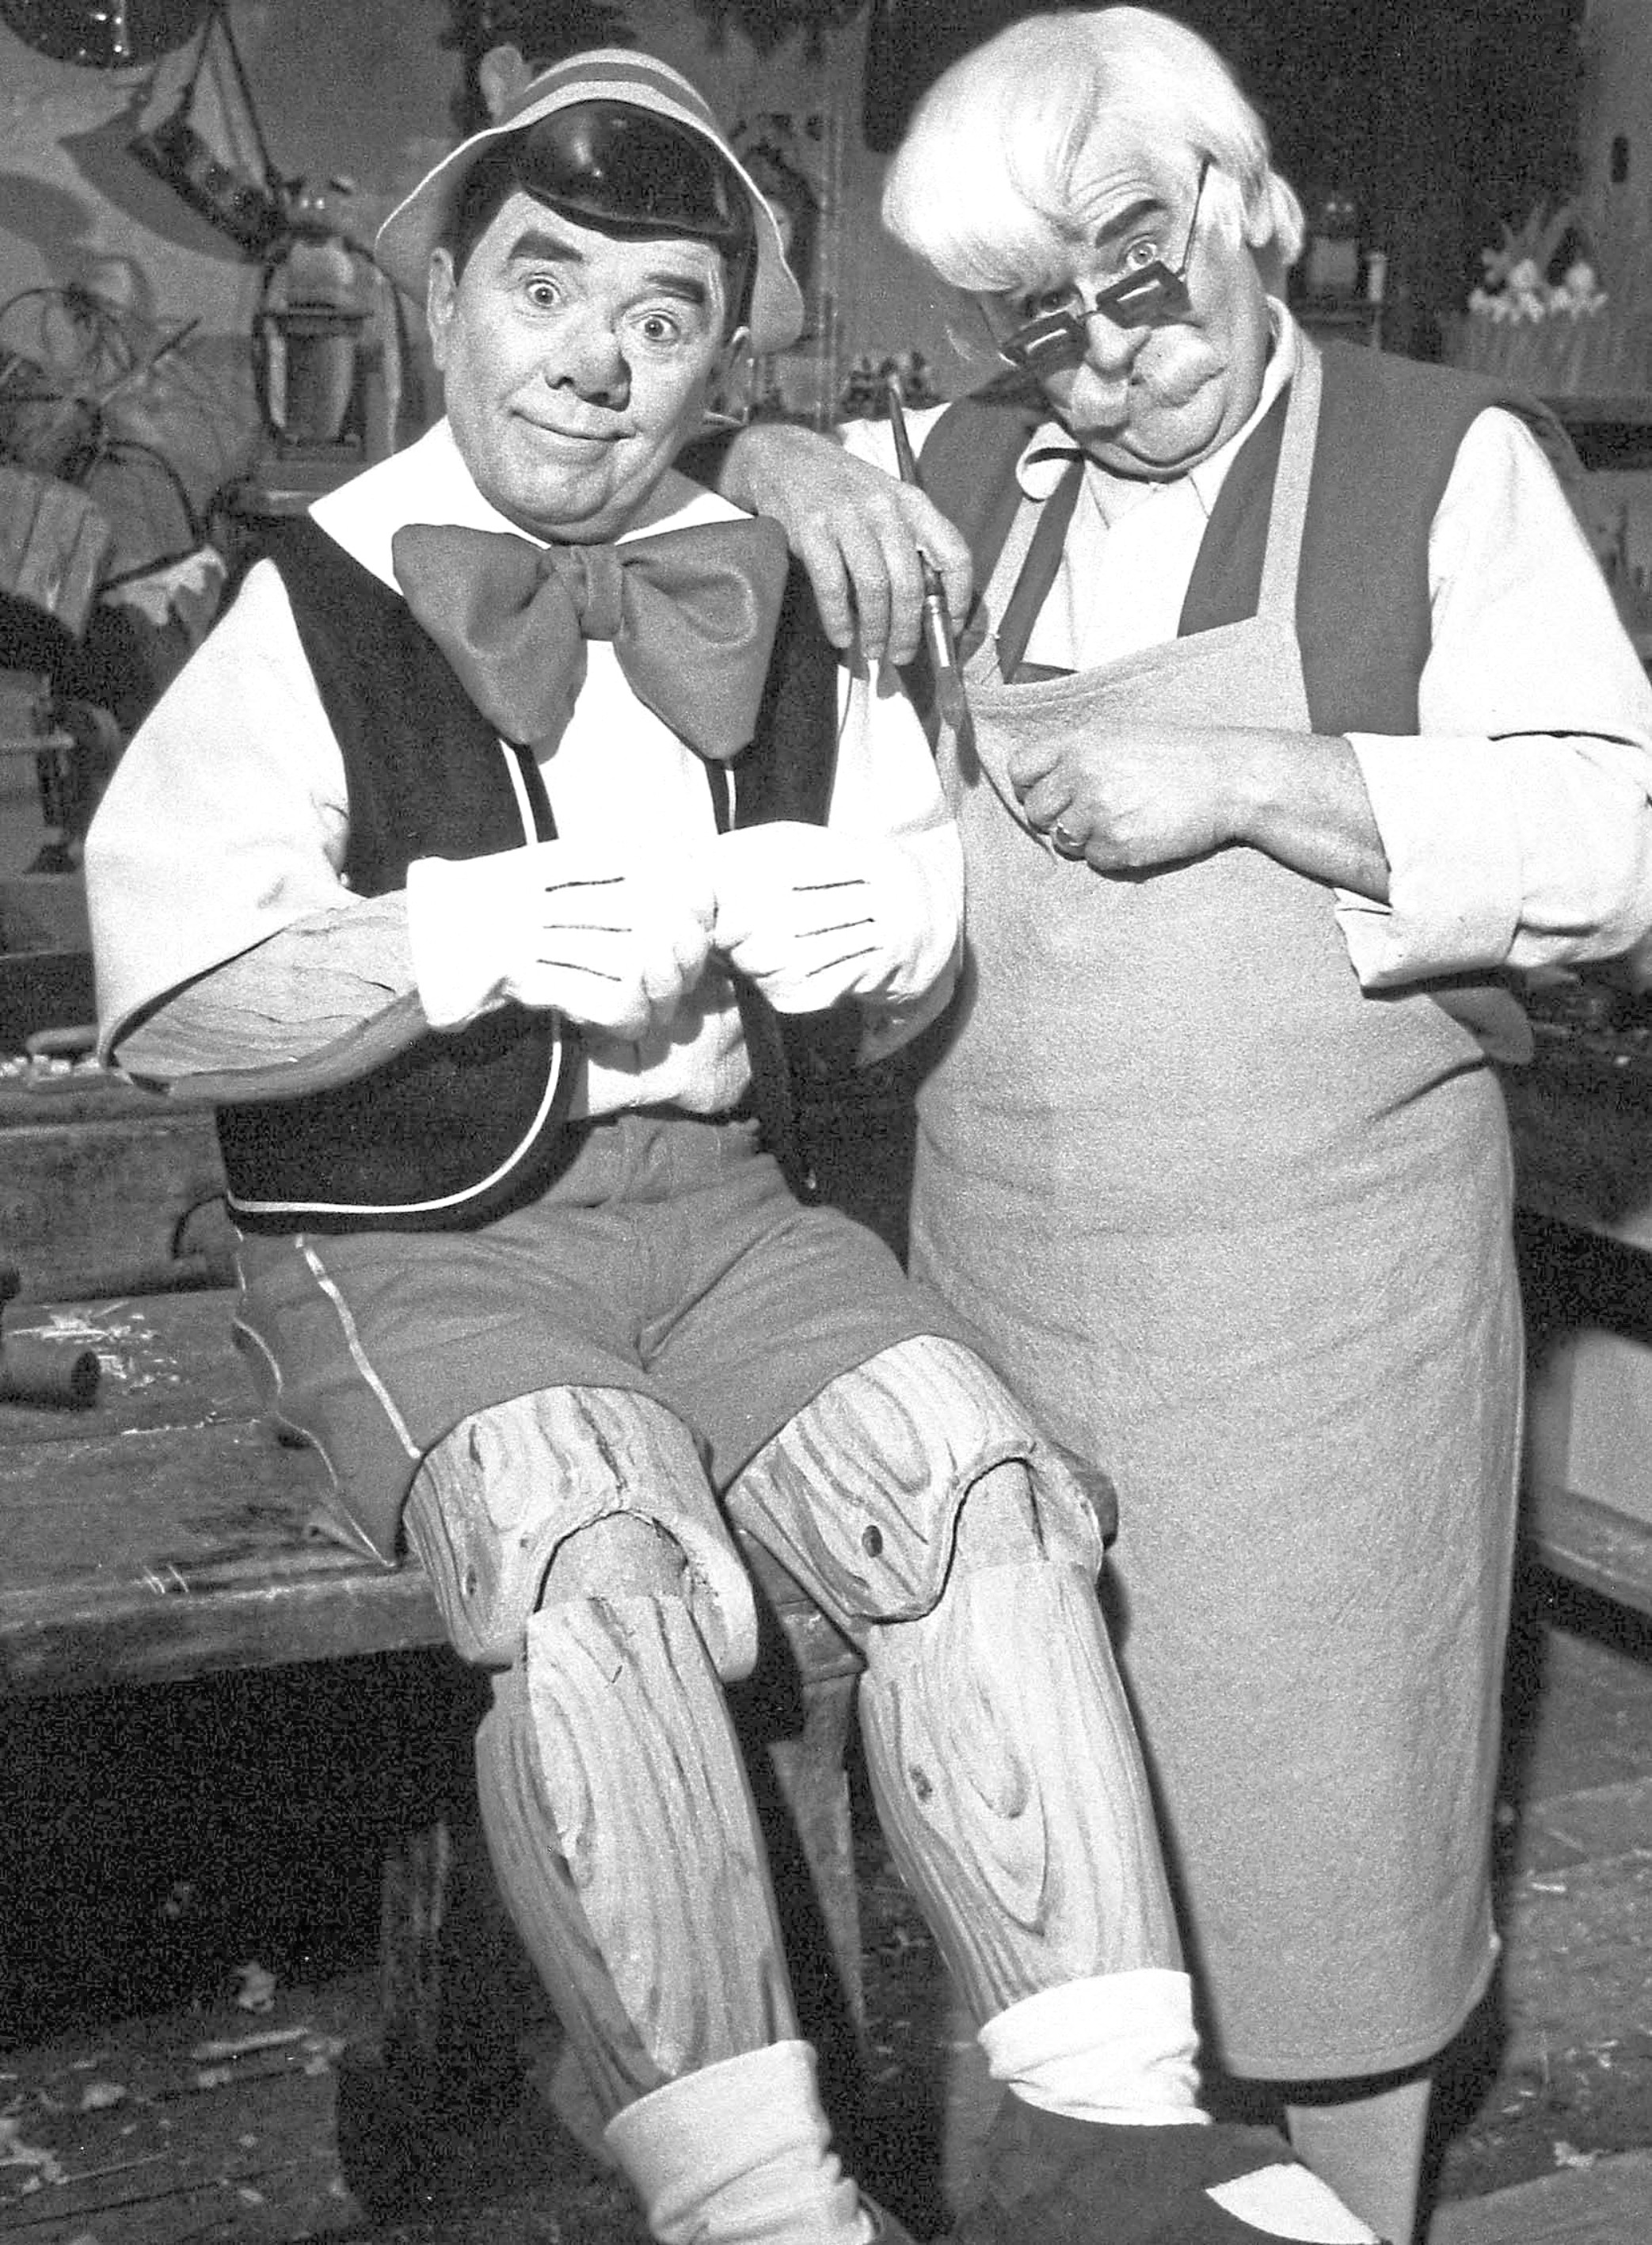 Remembering the Two Ronnies, part two: Parody was no